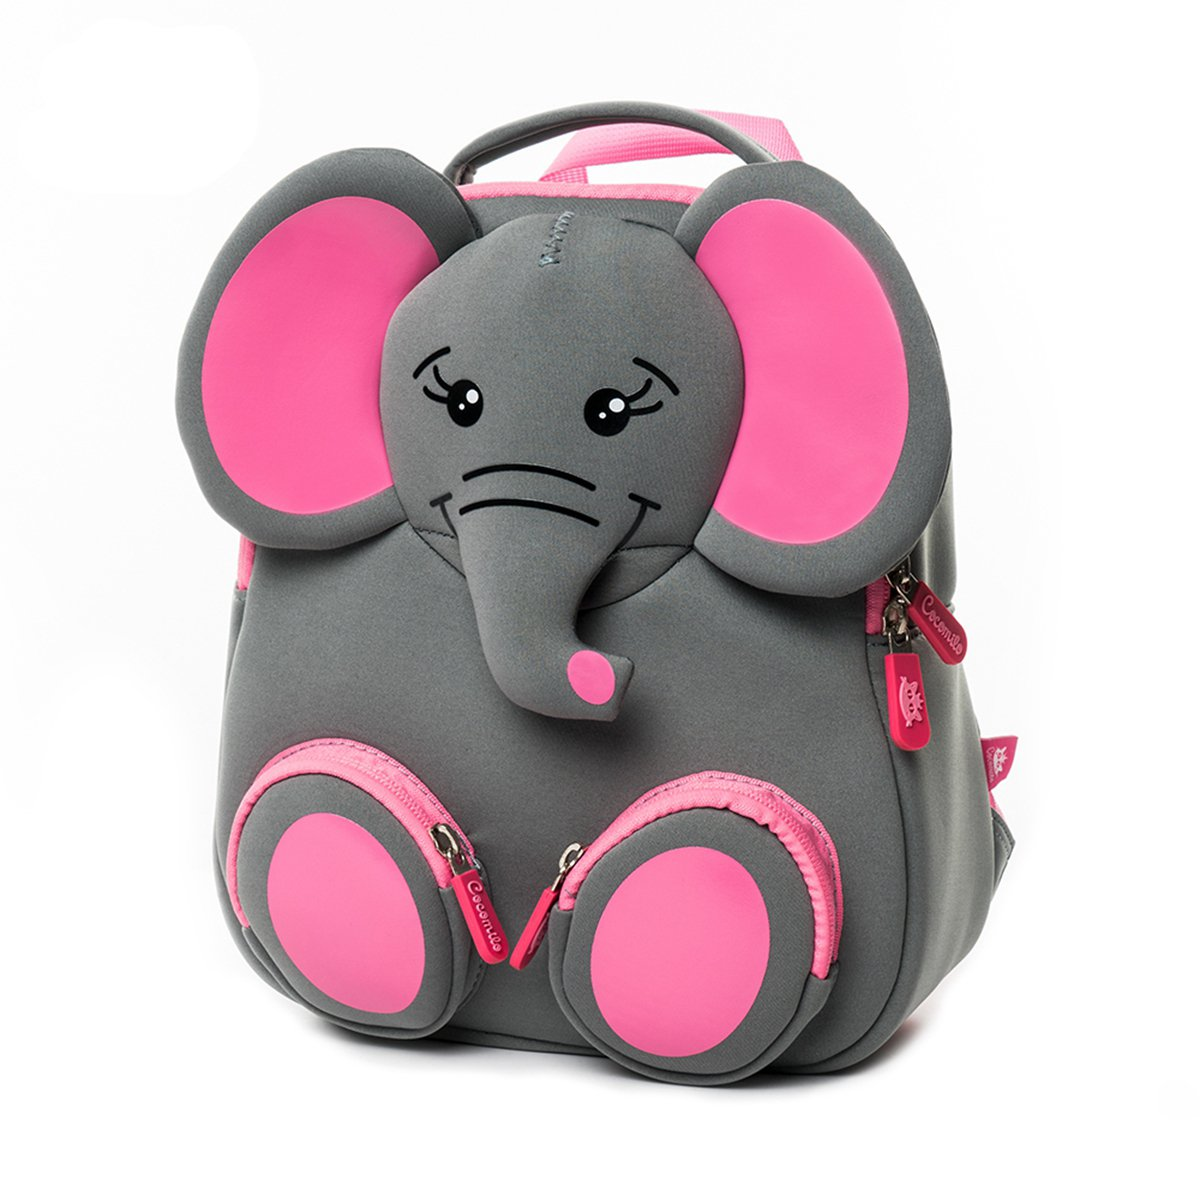 Cocomilo Toddler Elephant Backpack for Boys and Girls Waterproof Preschool Baby Bag with Anti Lost Leash for Kids